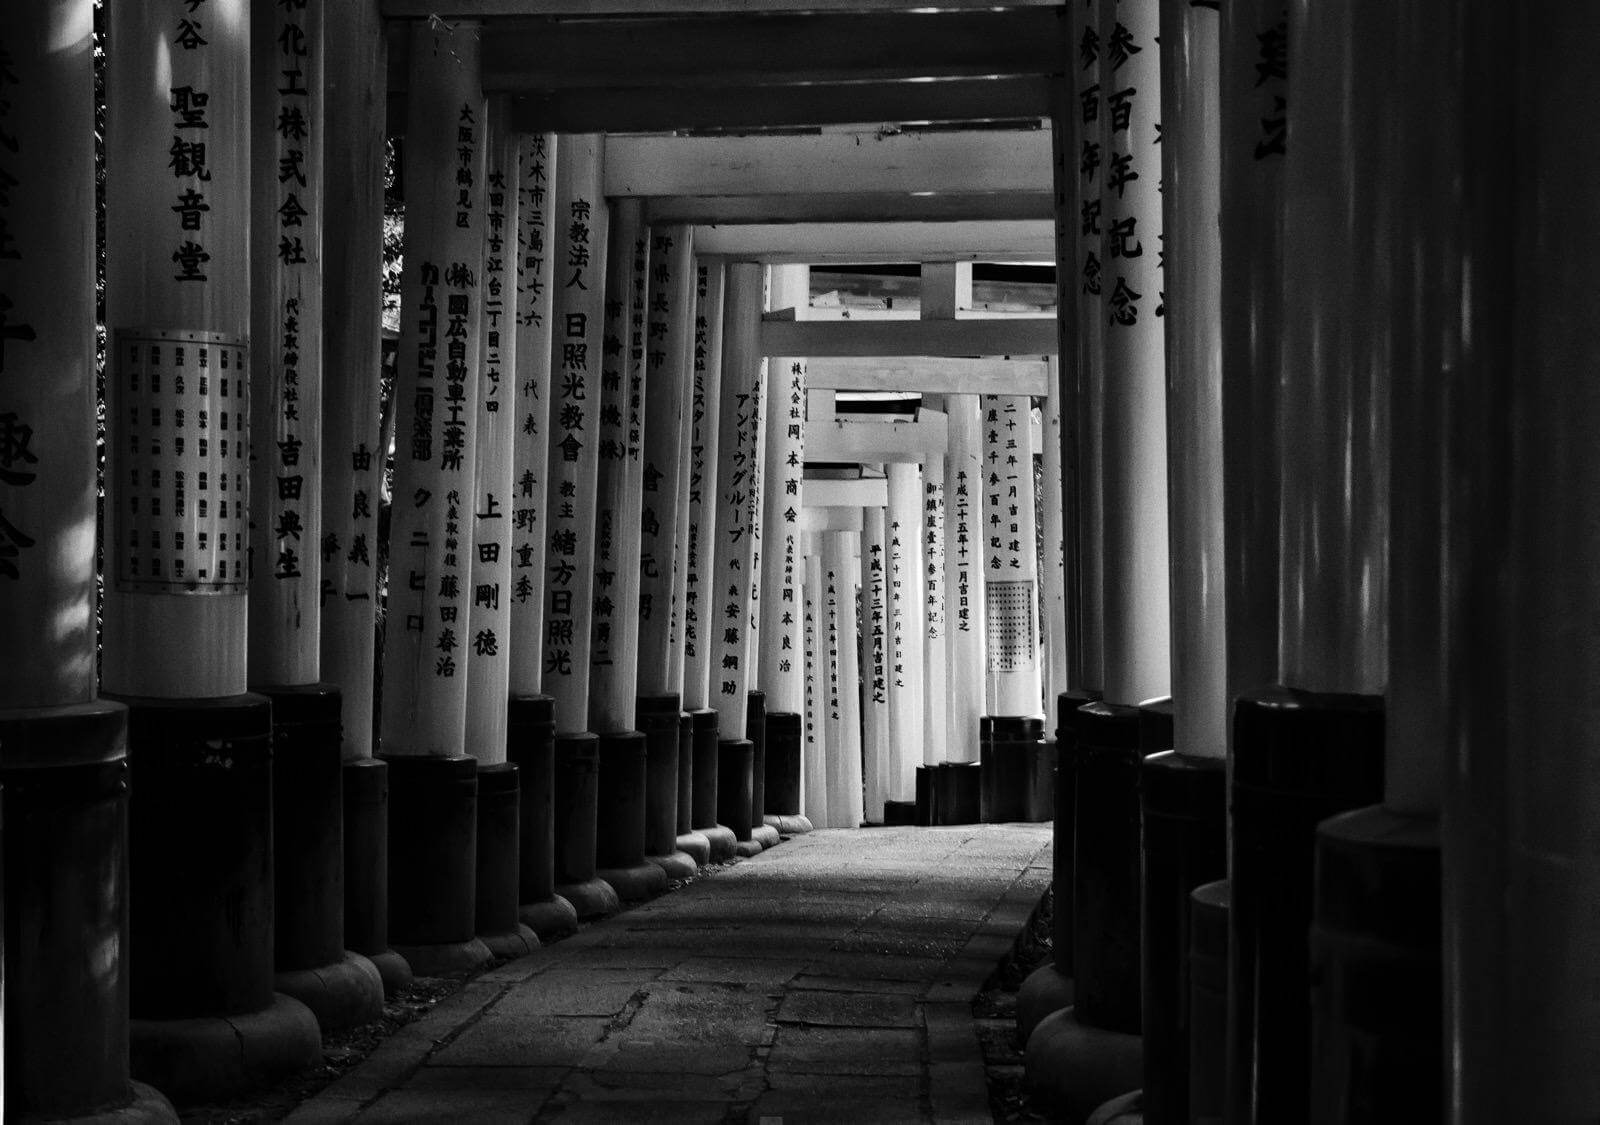 Torii gates at Fushimi Inari Shrine - Photo by Zdenek Sindelar of CuriousZed Photography